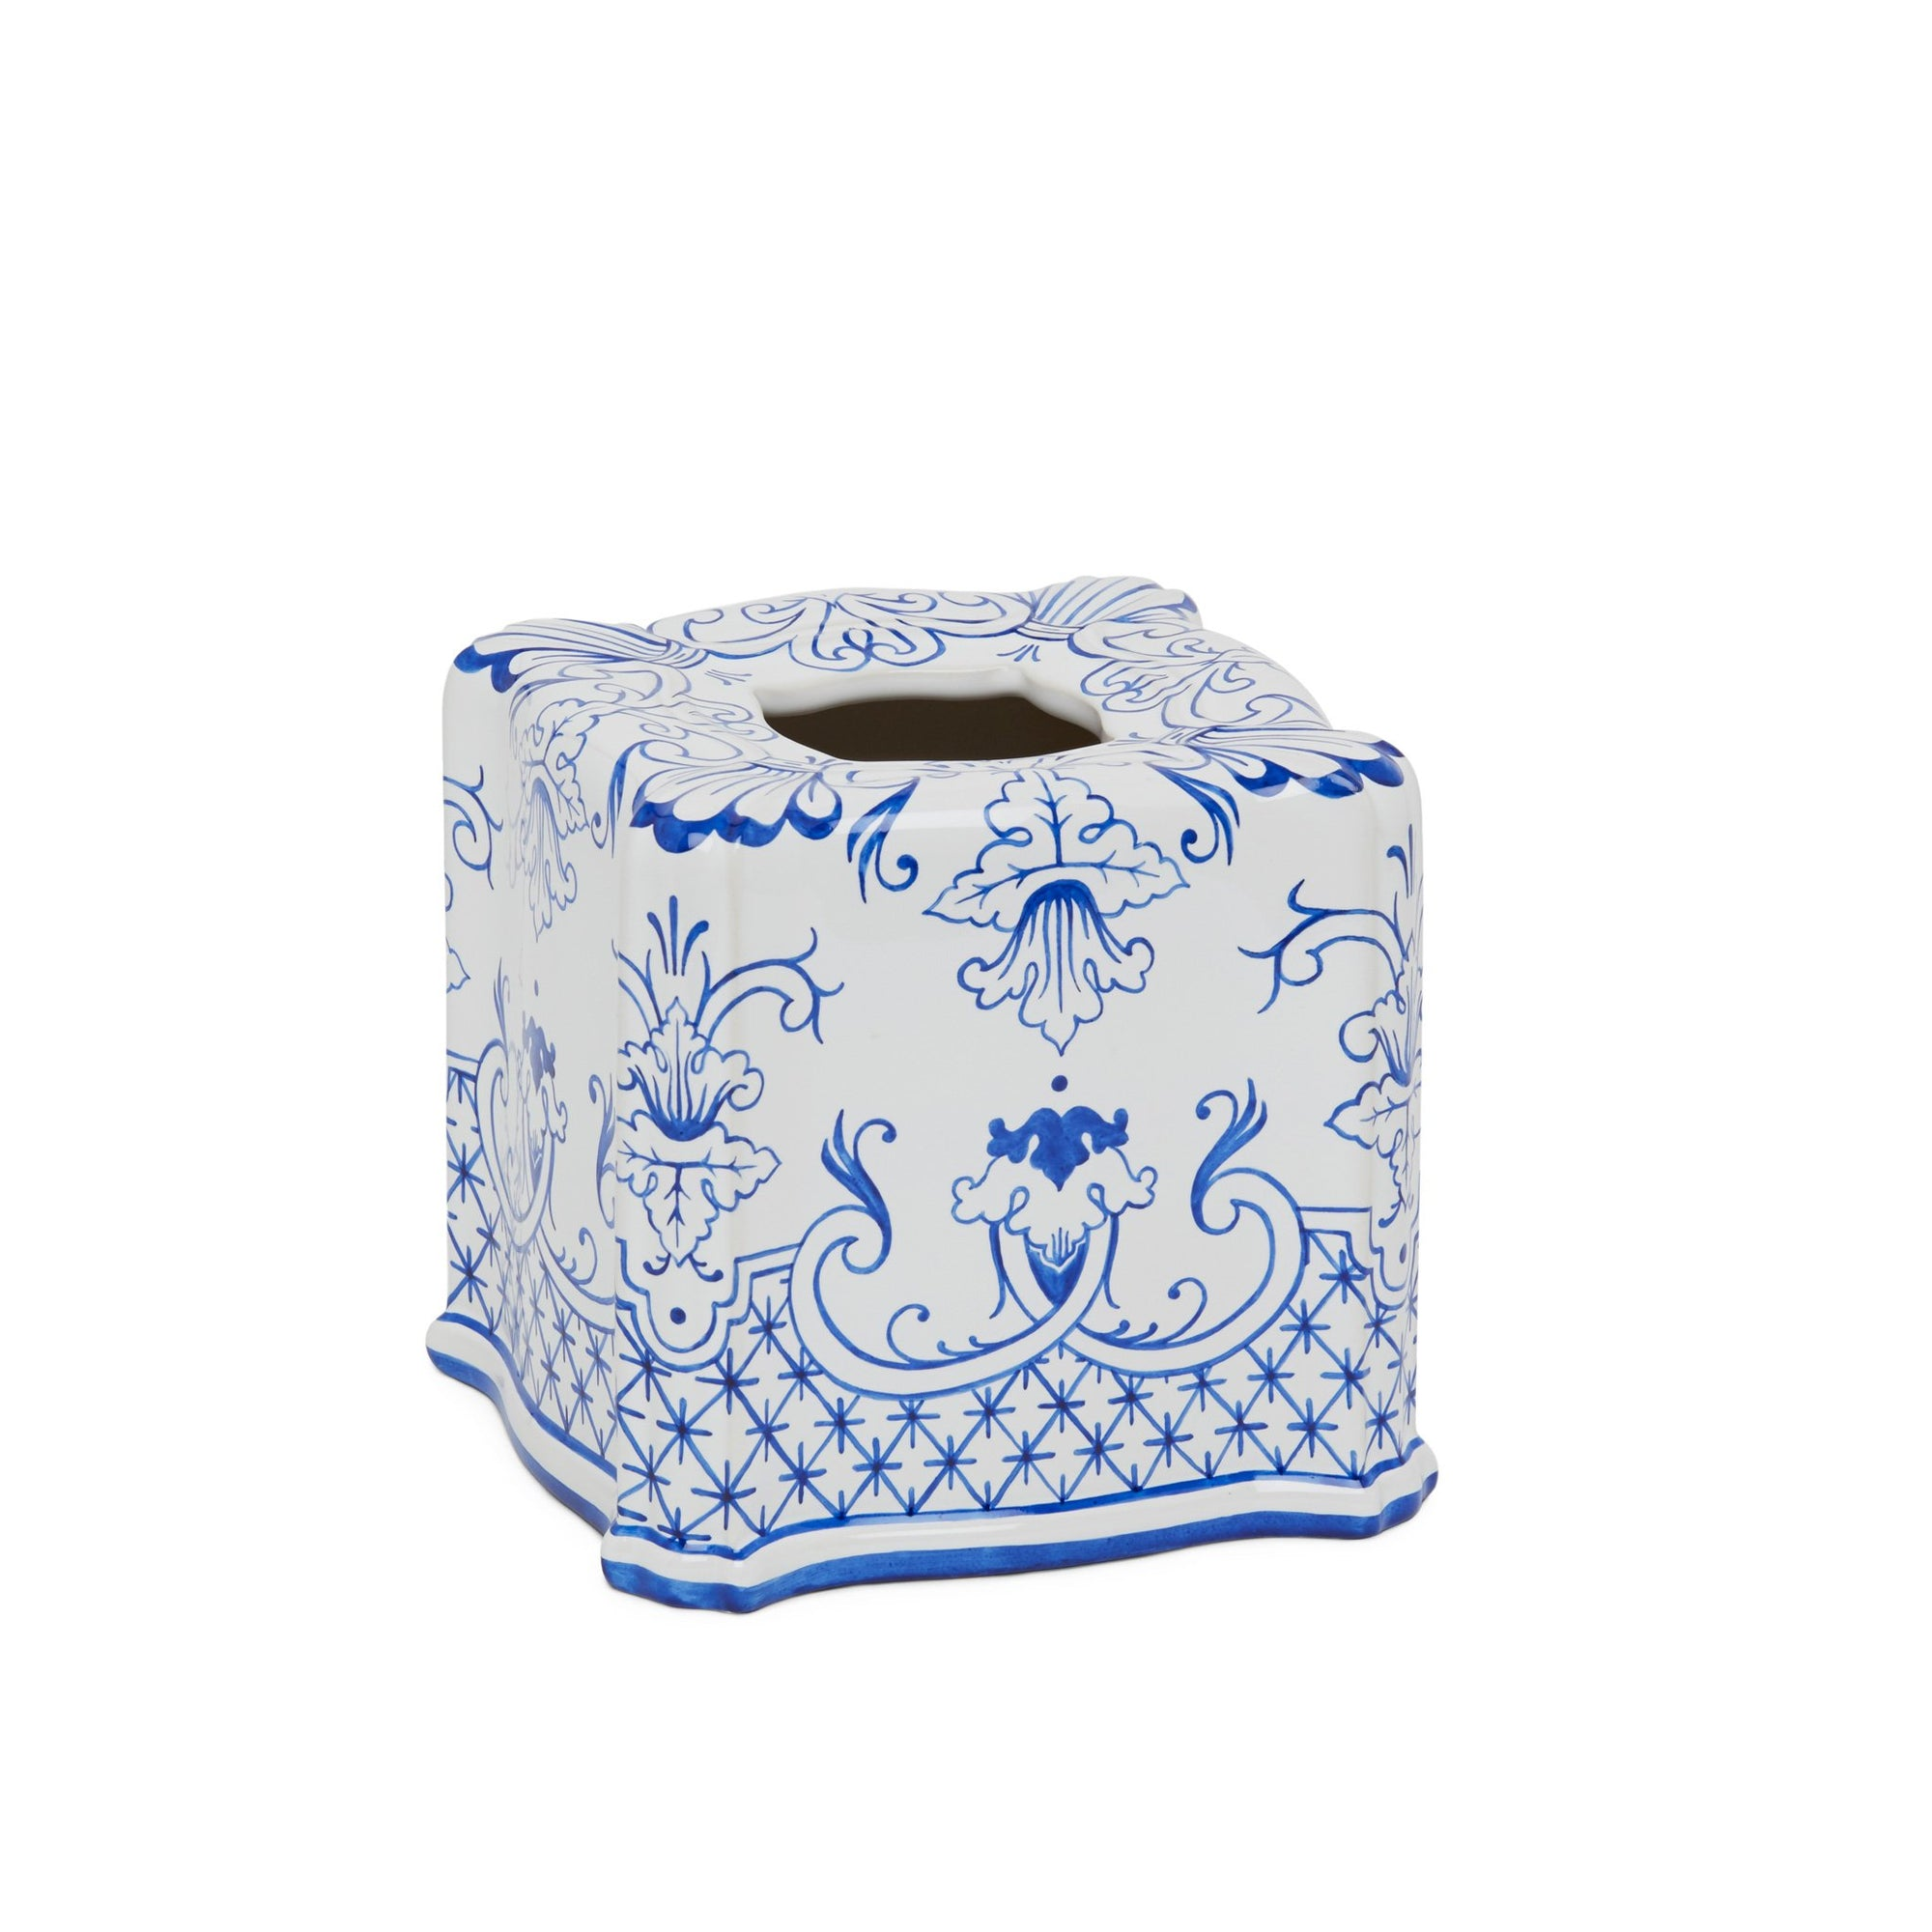 3413B-66DL-WH Sherle Wagner International Ceramic Elongated Tissue Box Cover with Delft on White